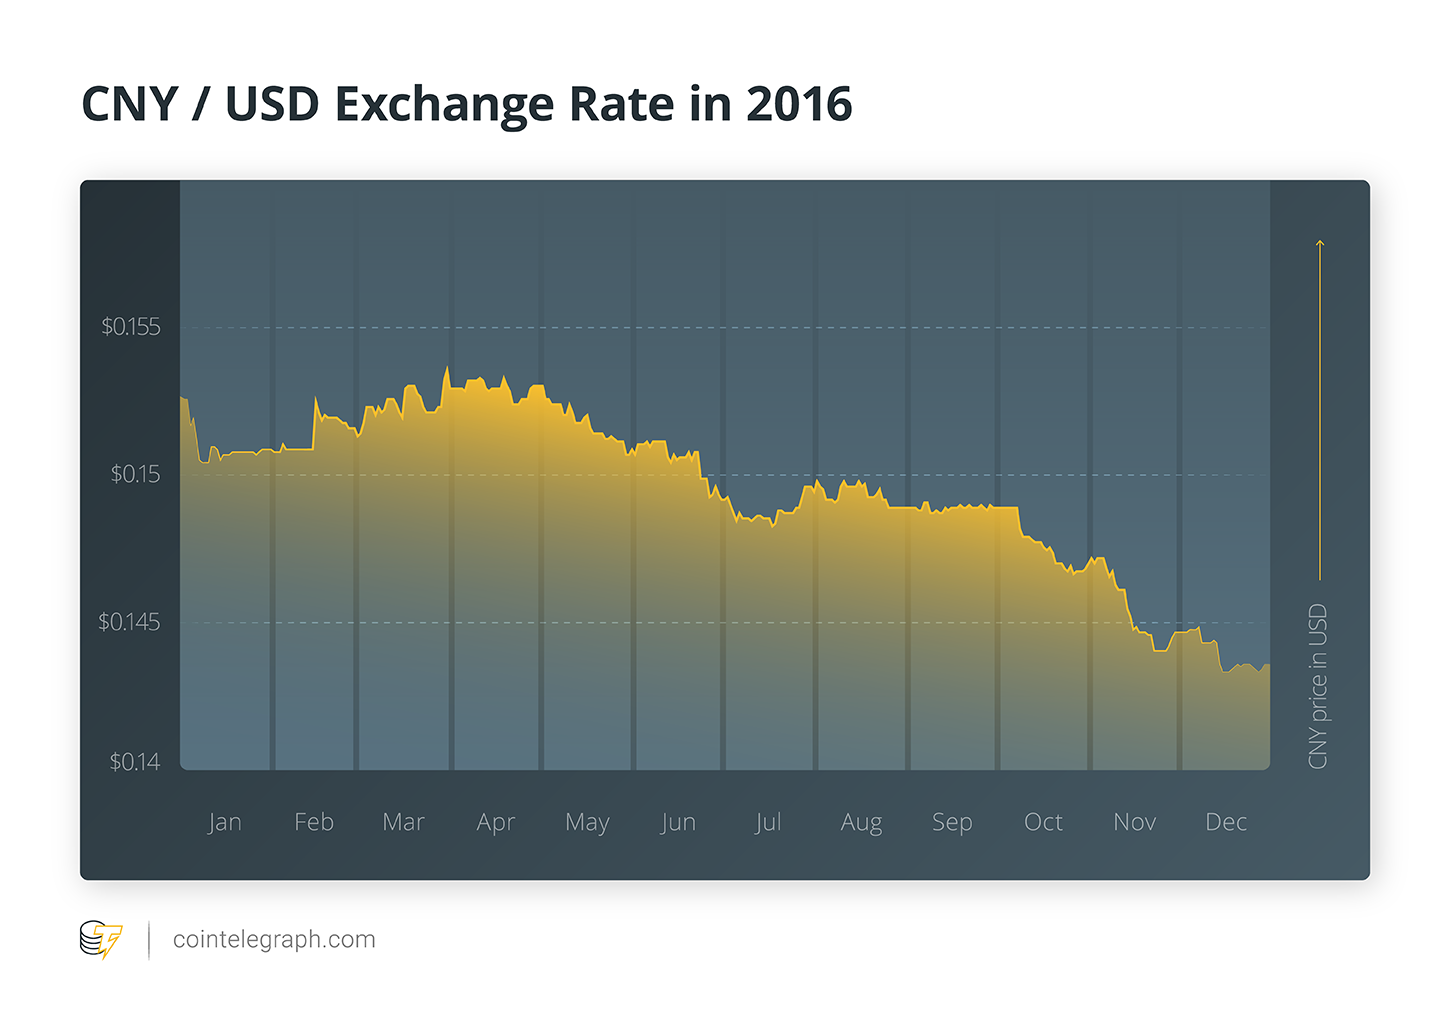 CNY/USD Exchange Rate in 2016